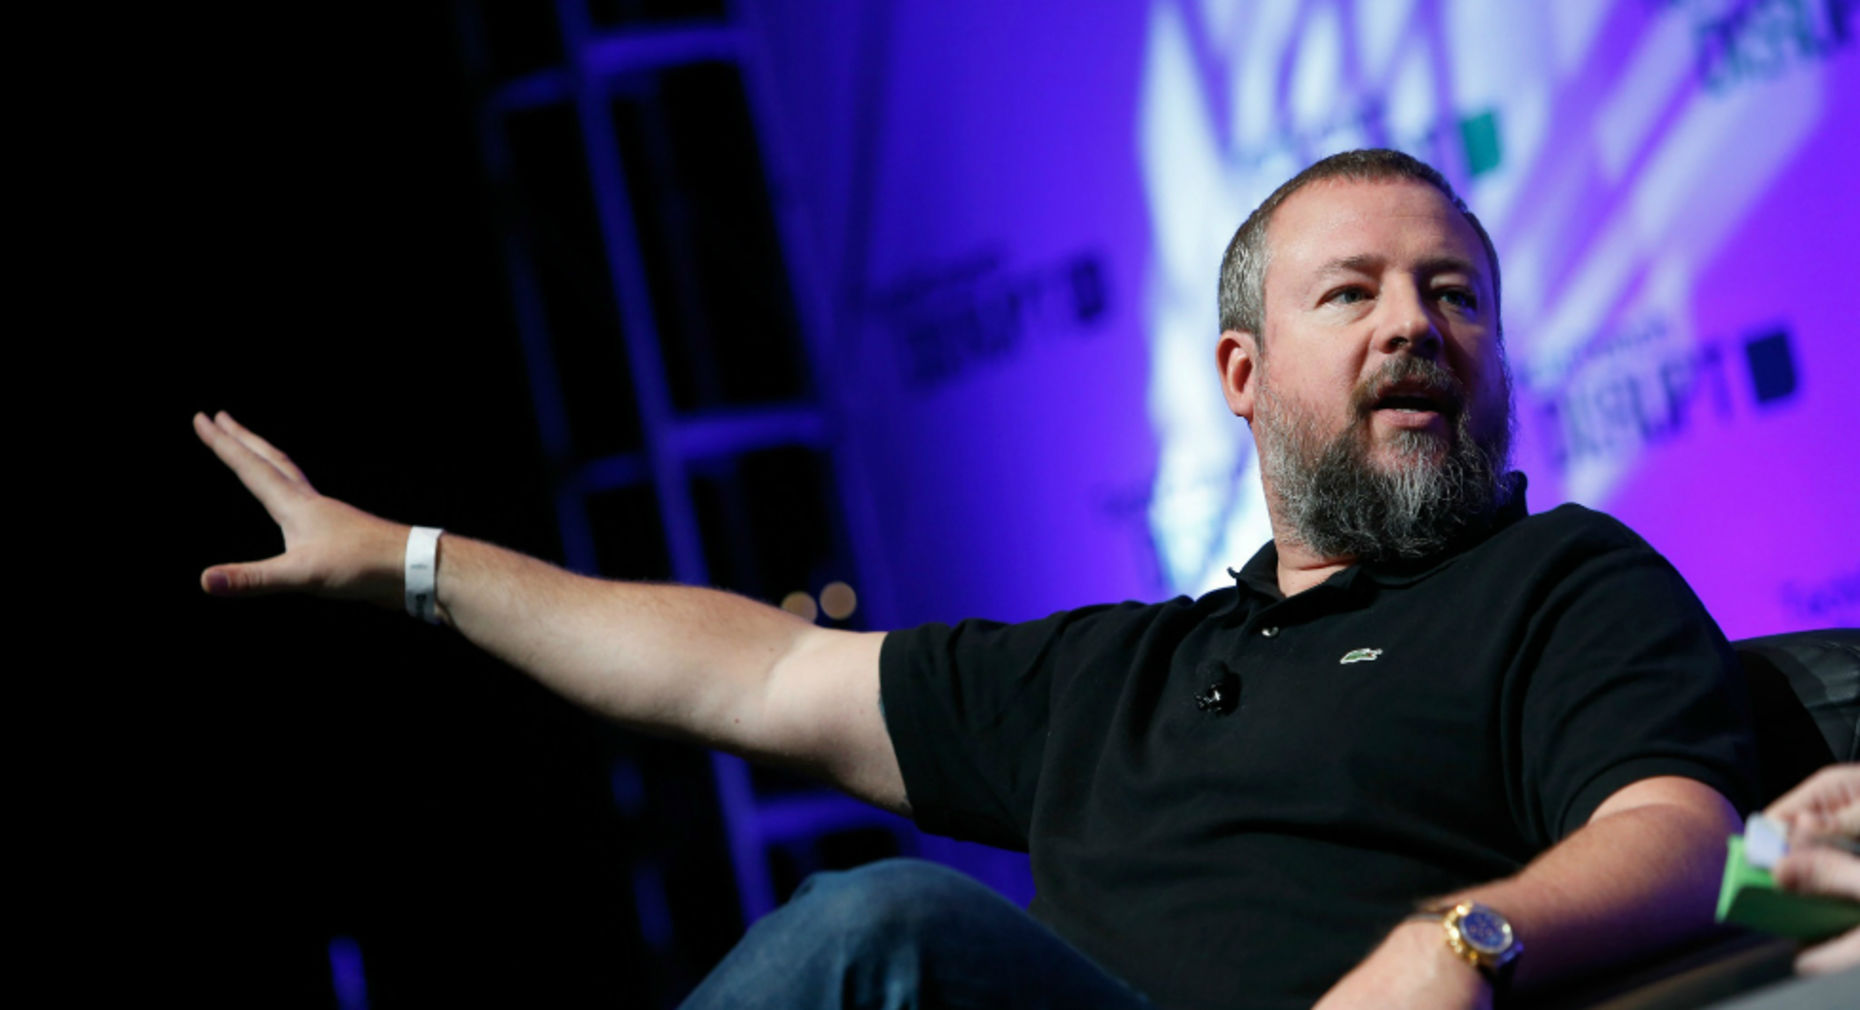 Vice co-founder Shane Smith. Photo by TechCrunch.